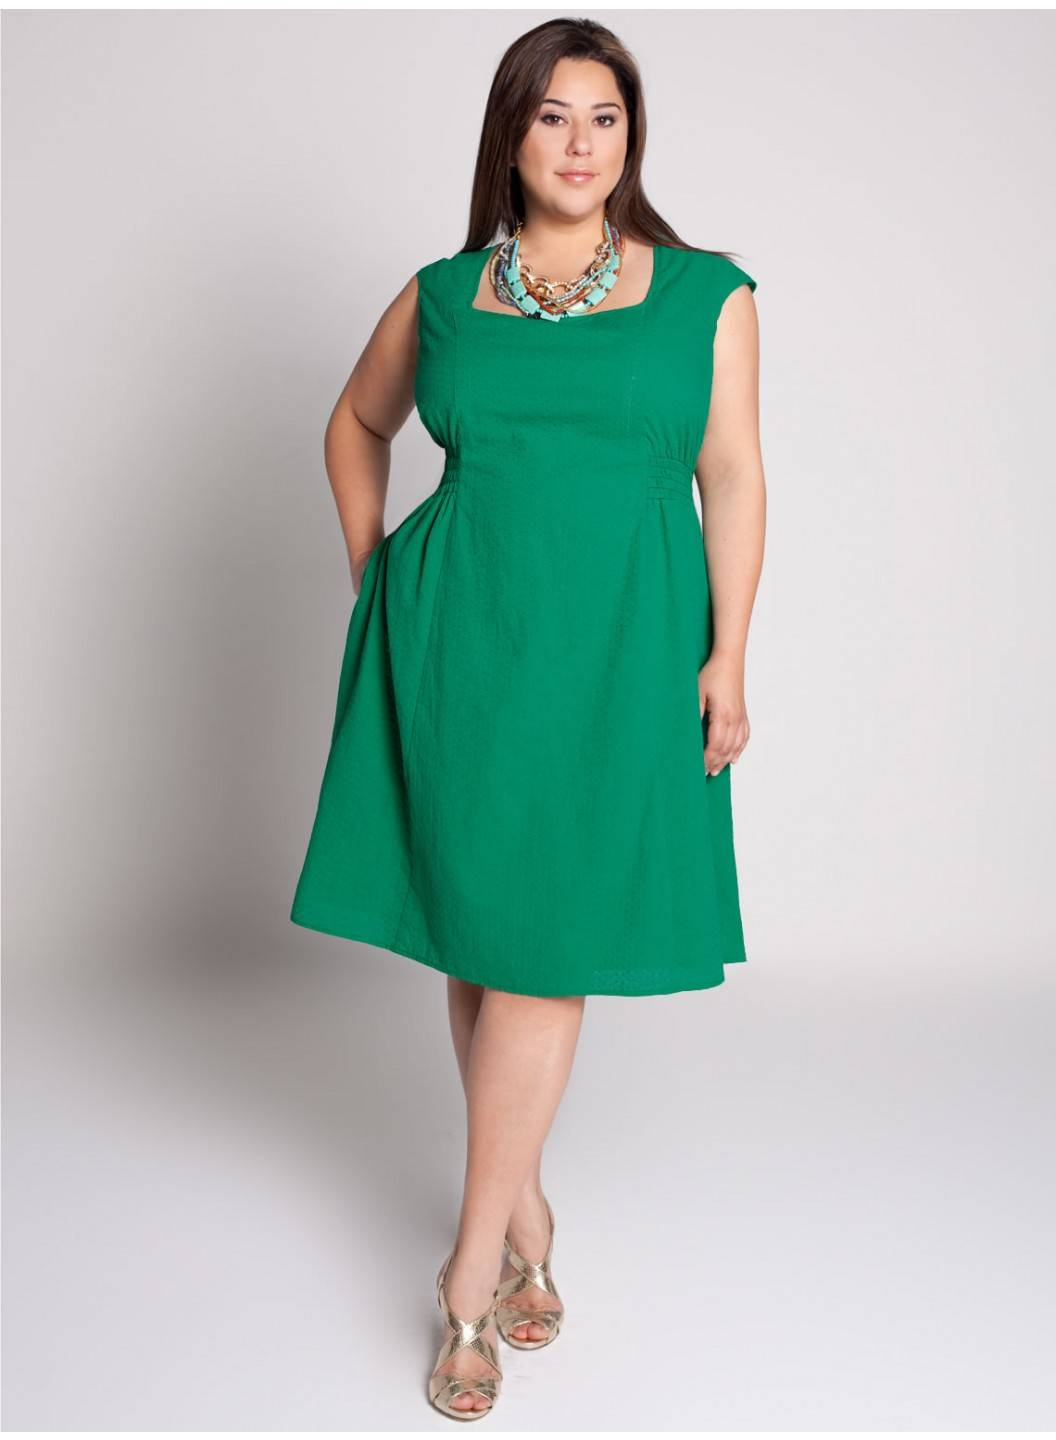 Summer Plus Size Dresses - Long Dresses Online